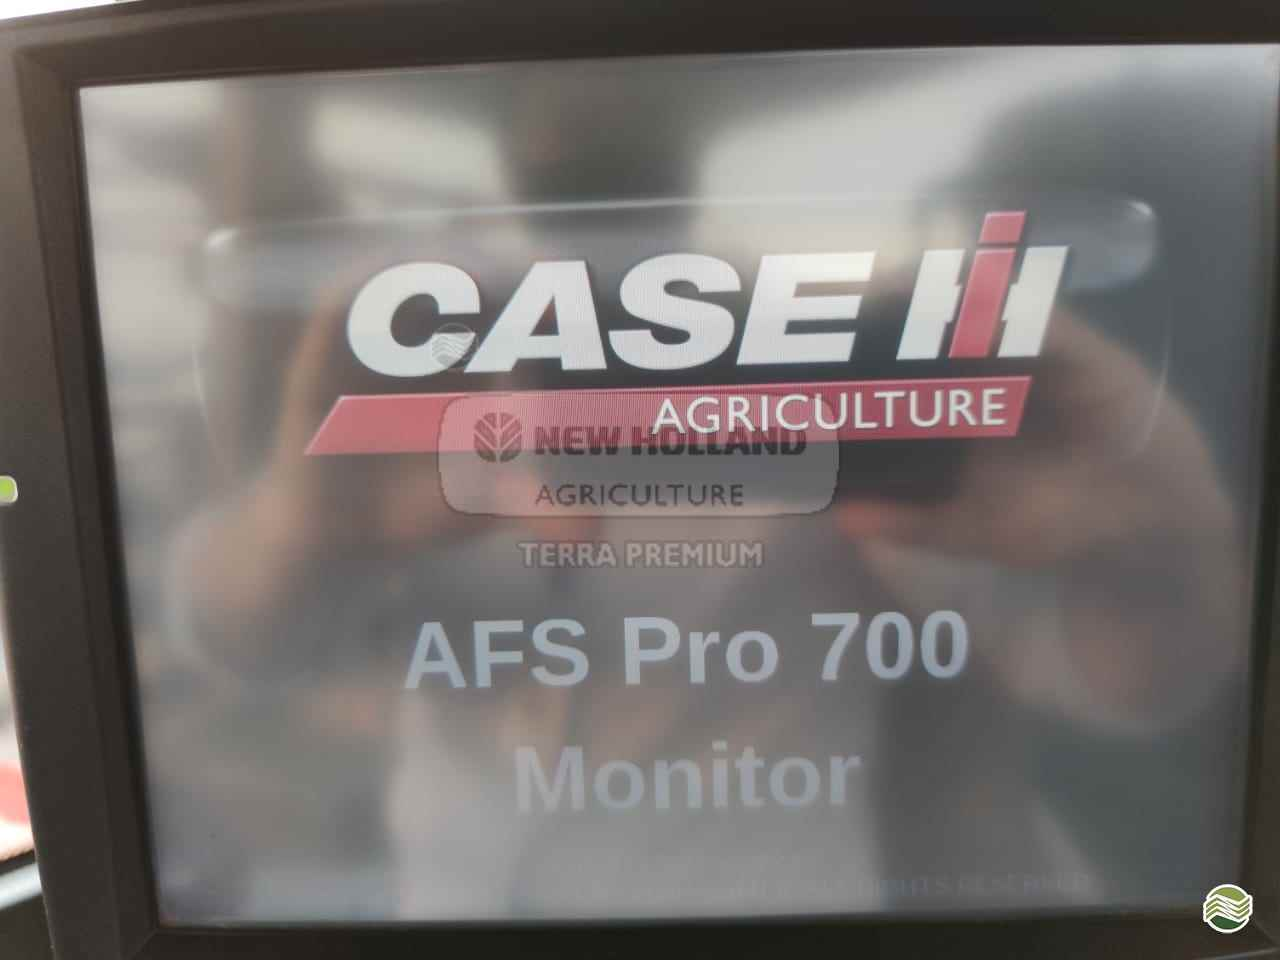 CASE PATRIOT 350  2014/2014 Terra Premium - New Holland